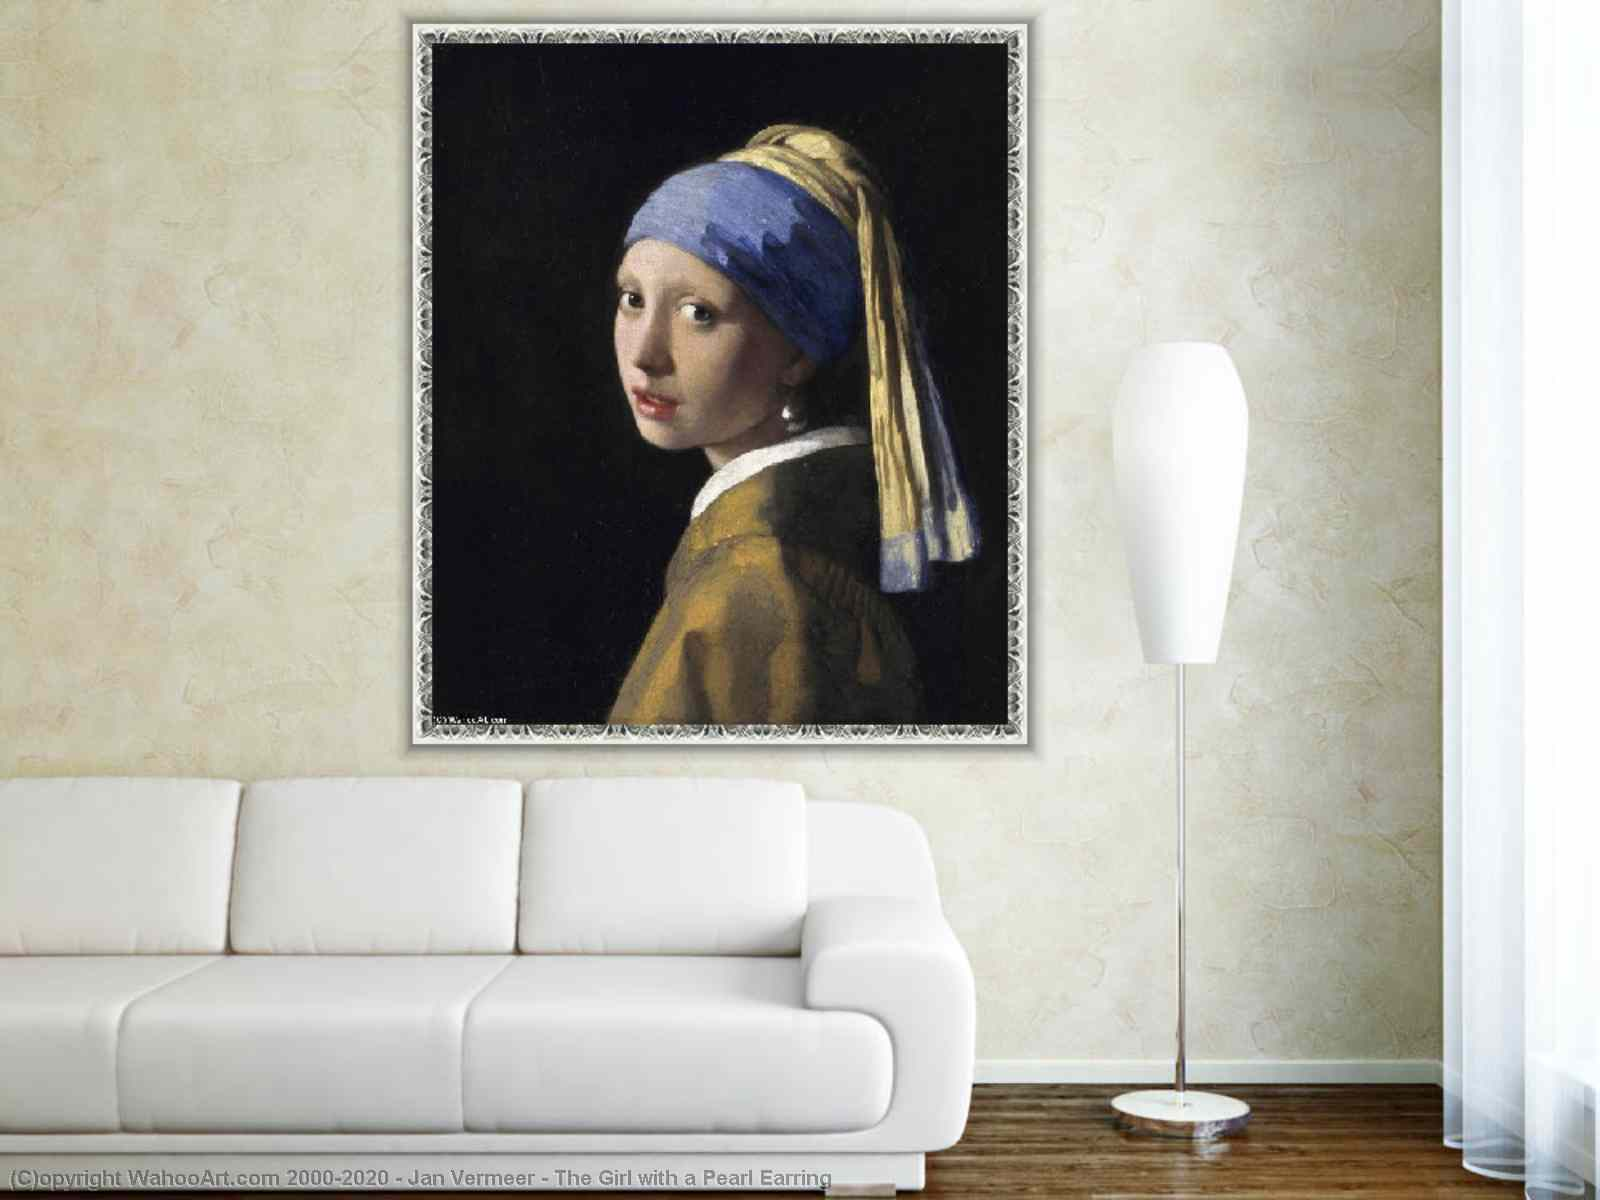 The Girl with a Pearl Earring by Jan Vermeer